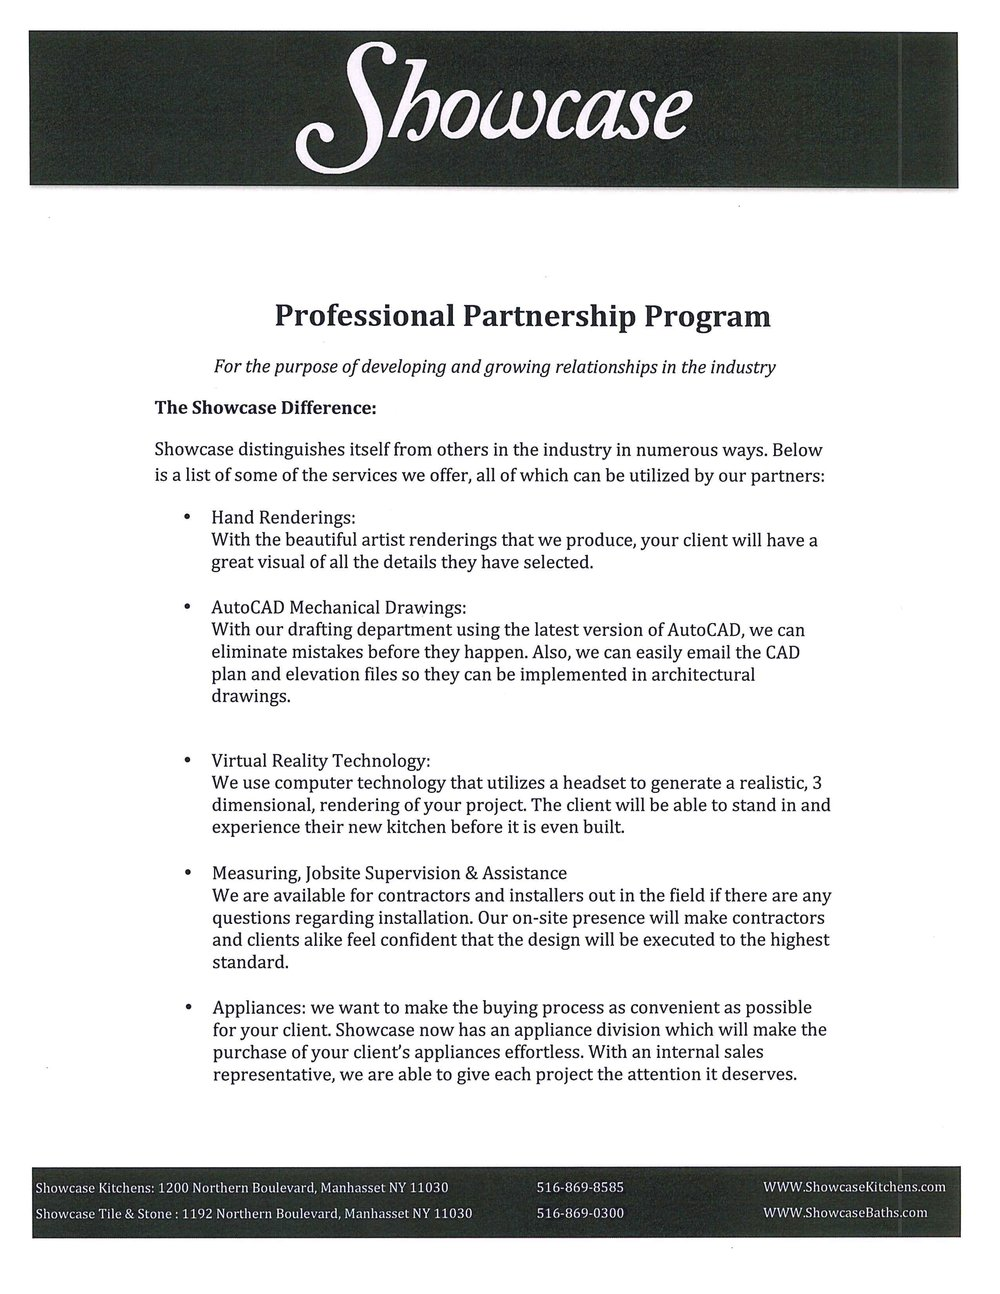 Partner Program Information page 3